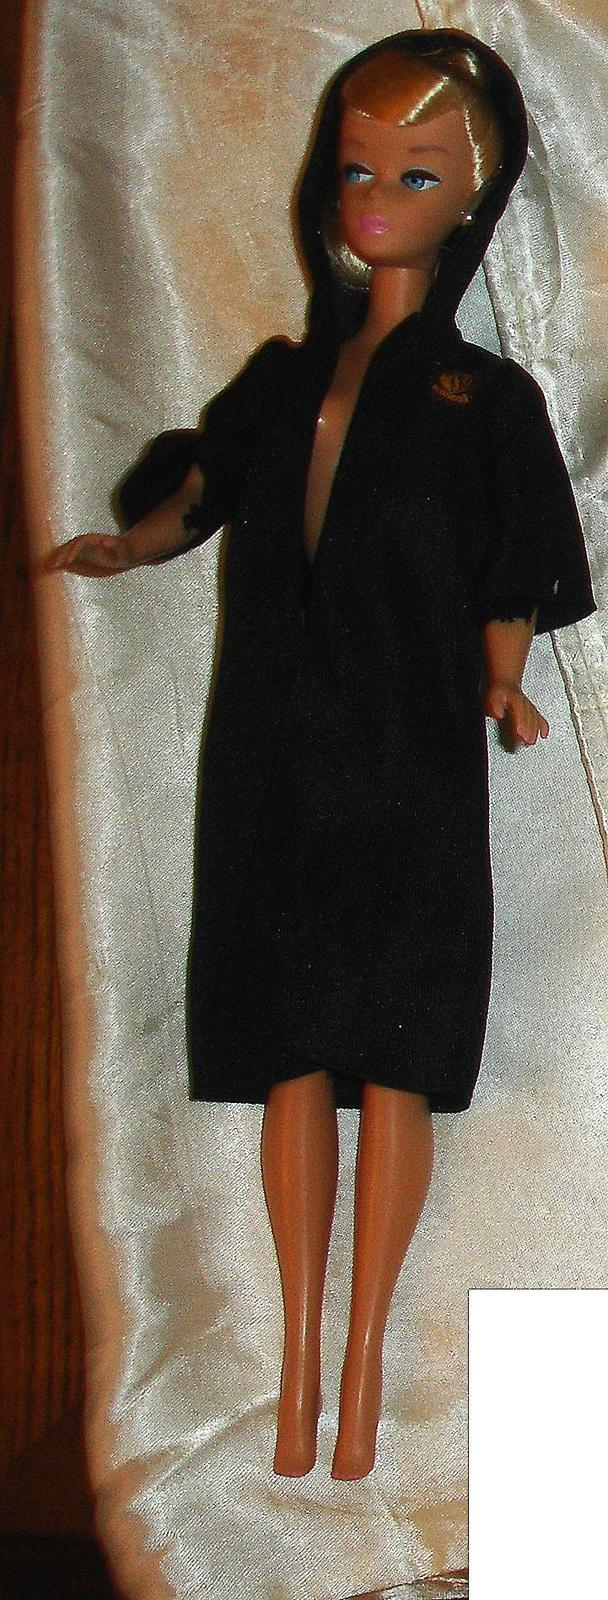 Primary image for Mattel black hooded cape fits Vintage Barbie made for Hermione doll clothes HP